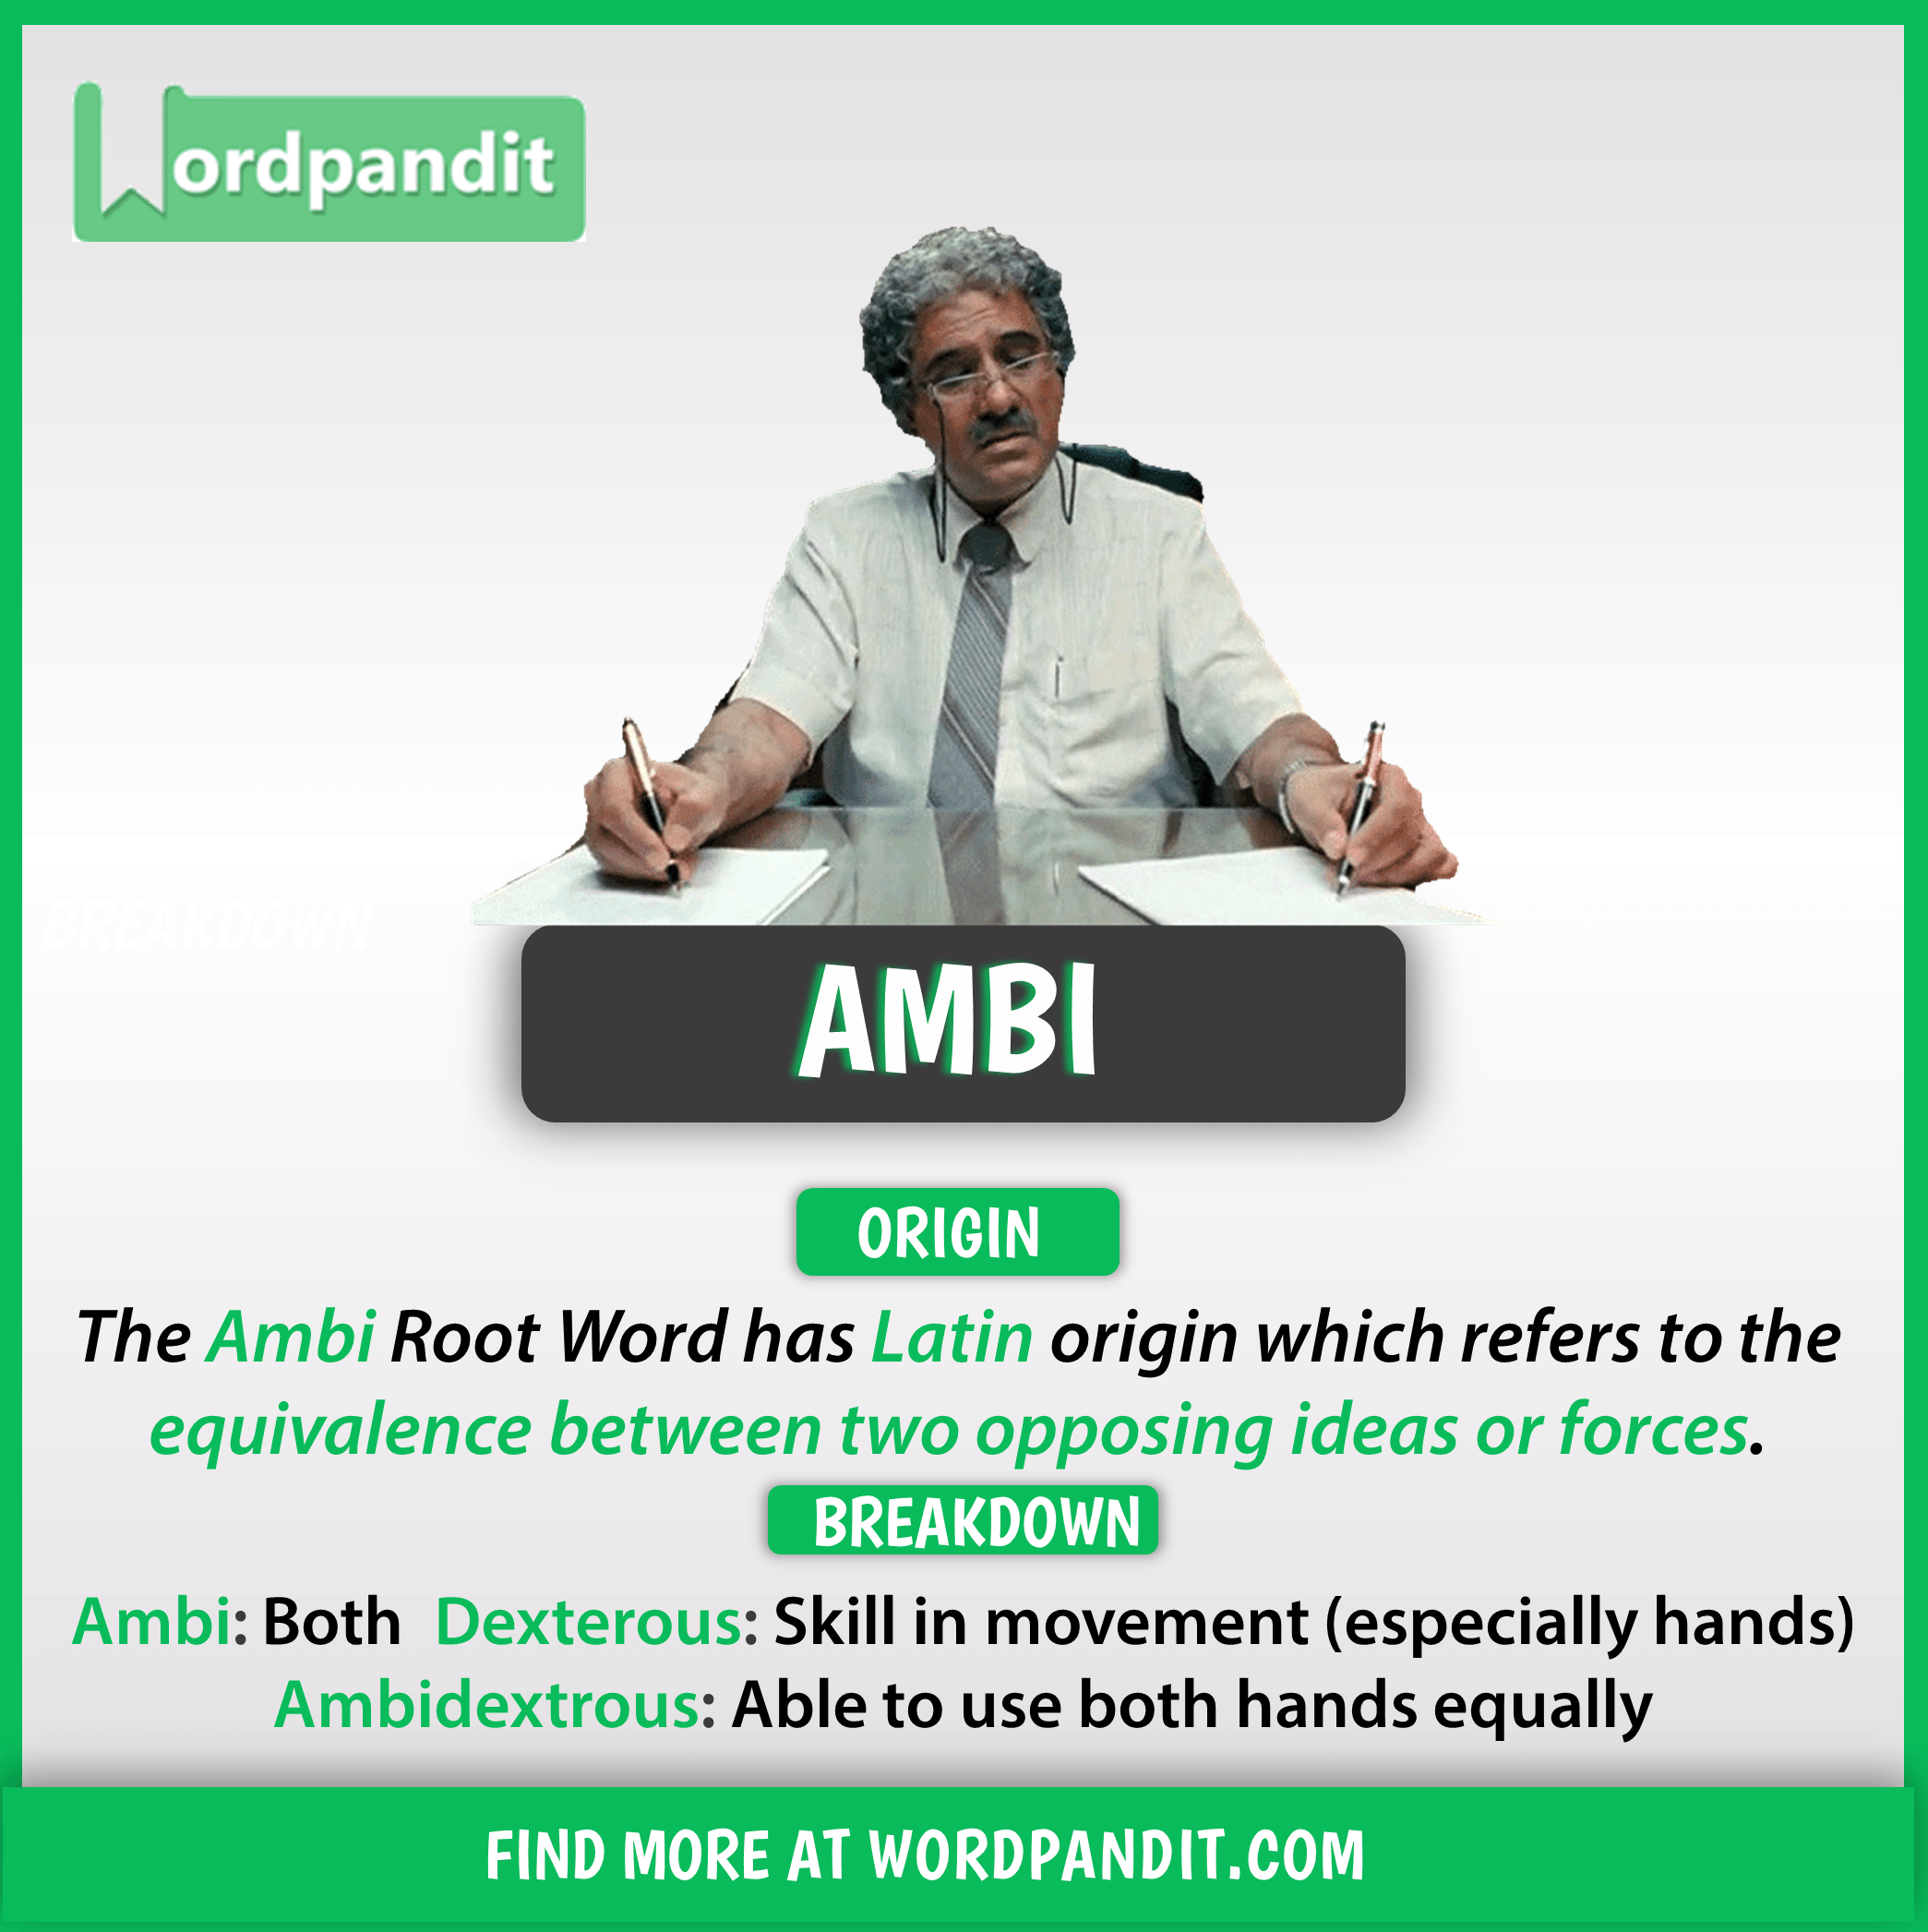 List Of Words Based On Ambi Root Word With Their Meaning